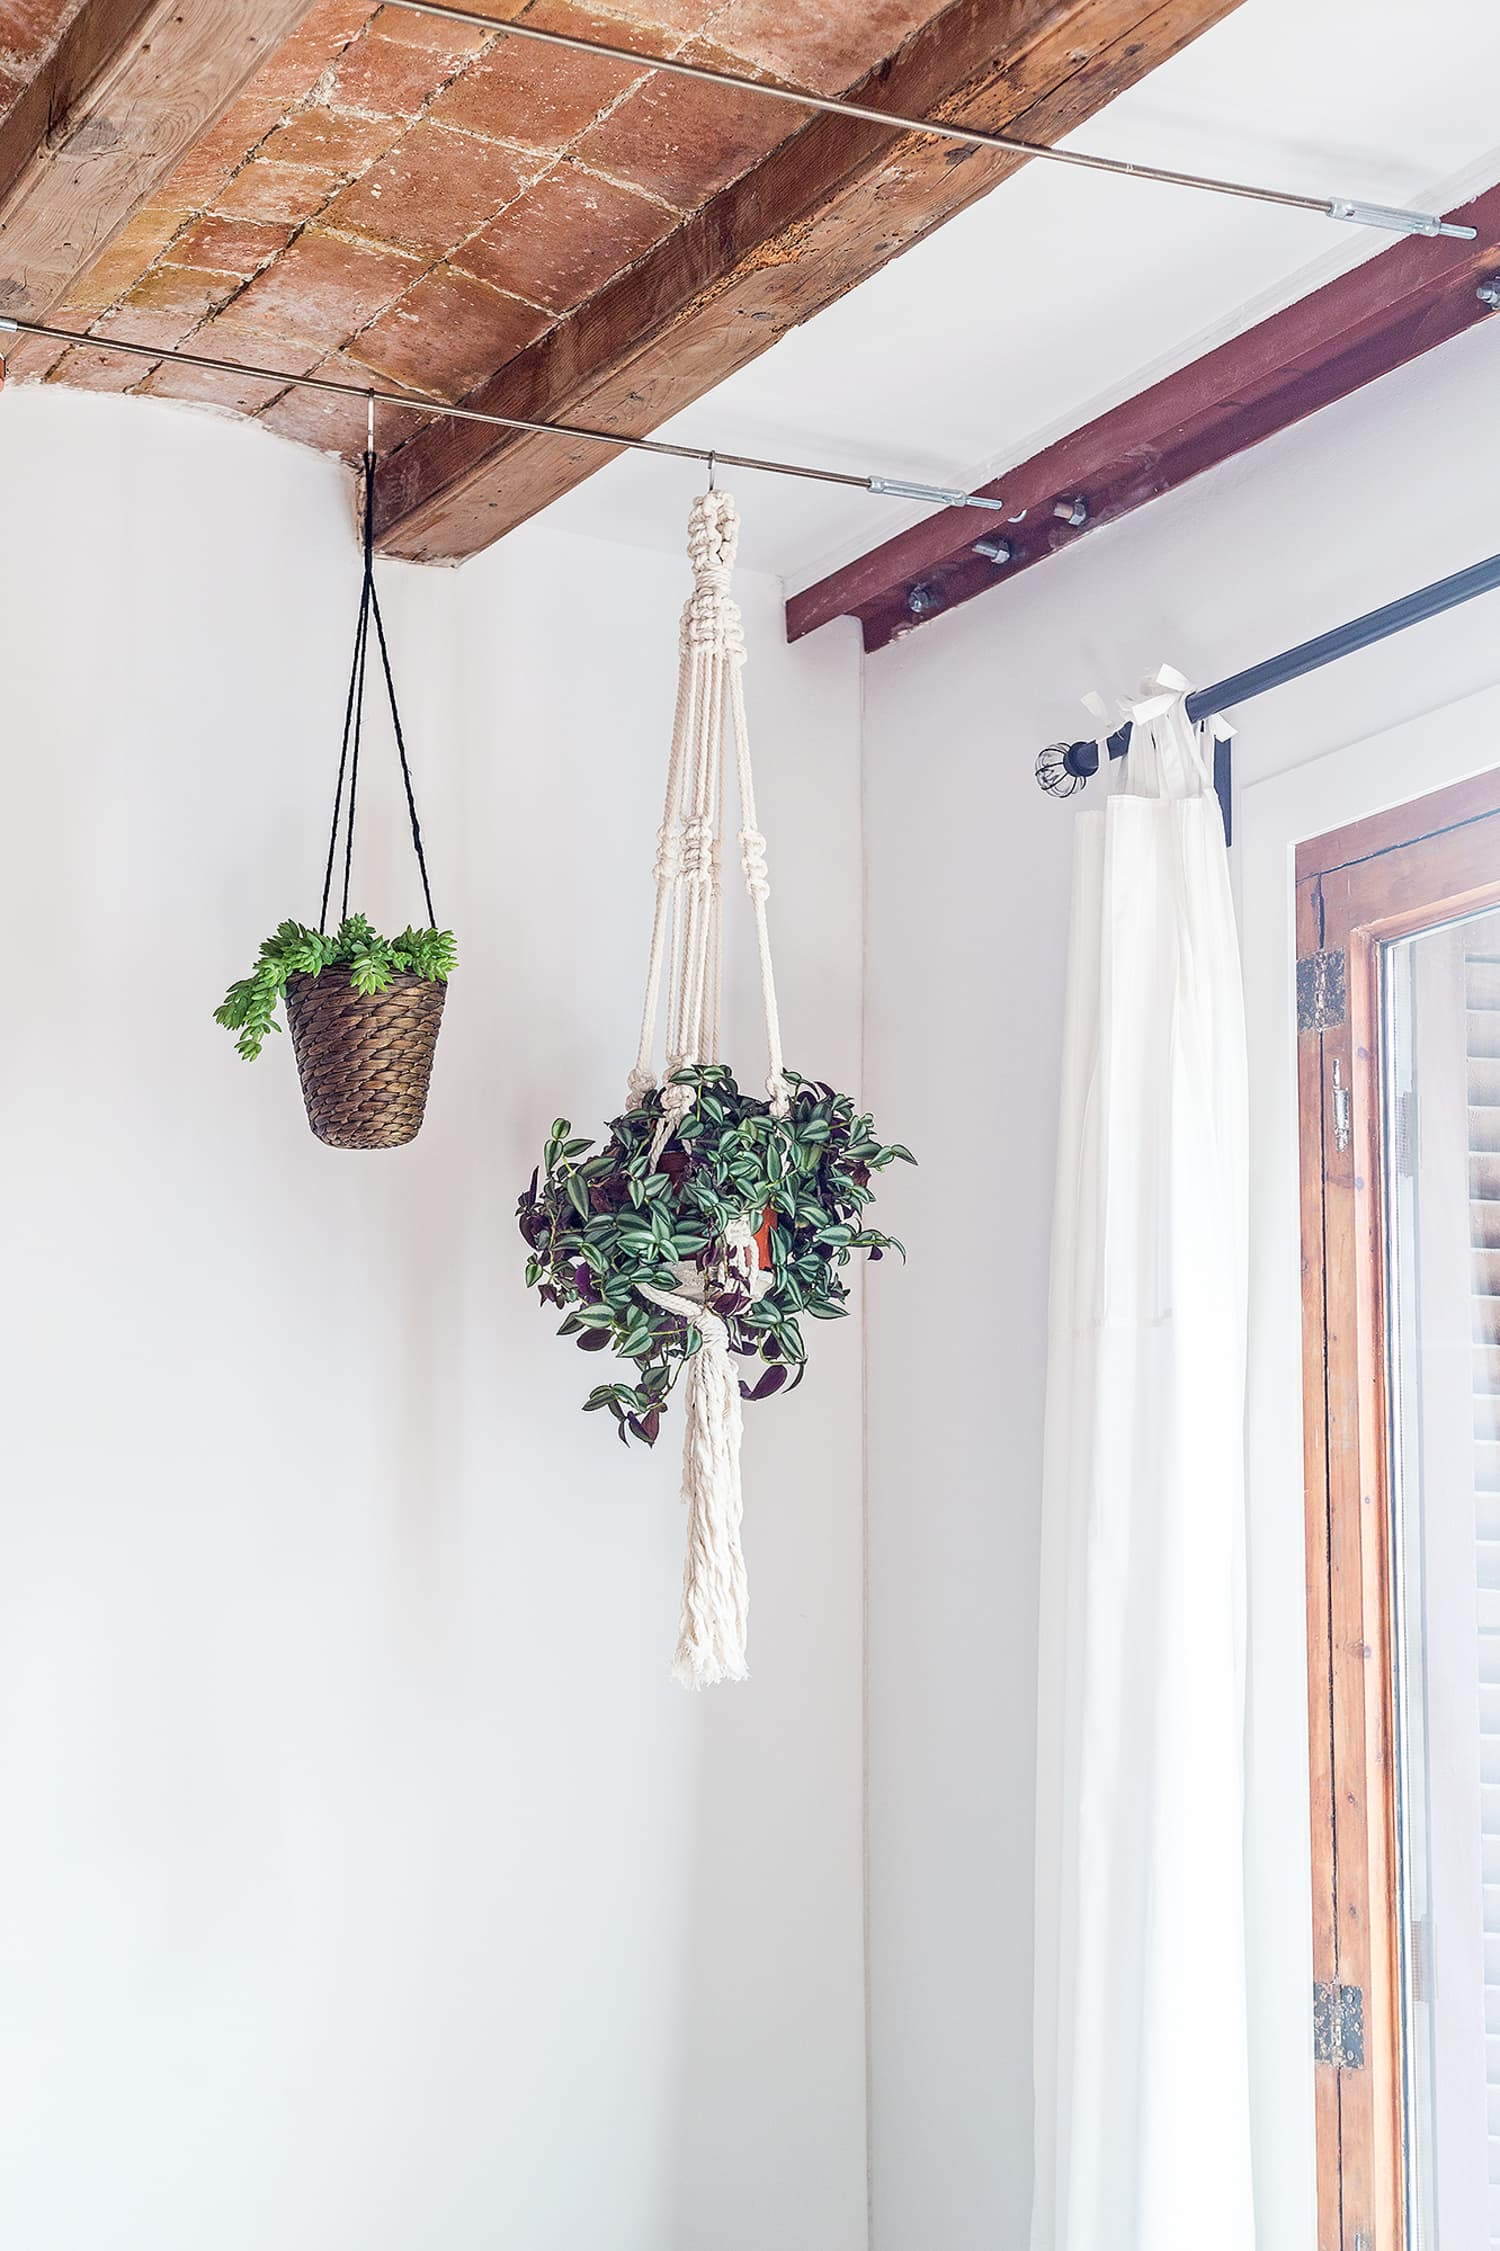 How To Hang Plants From Your Ceiling in Less than 20 Minutes